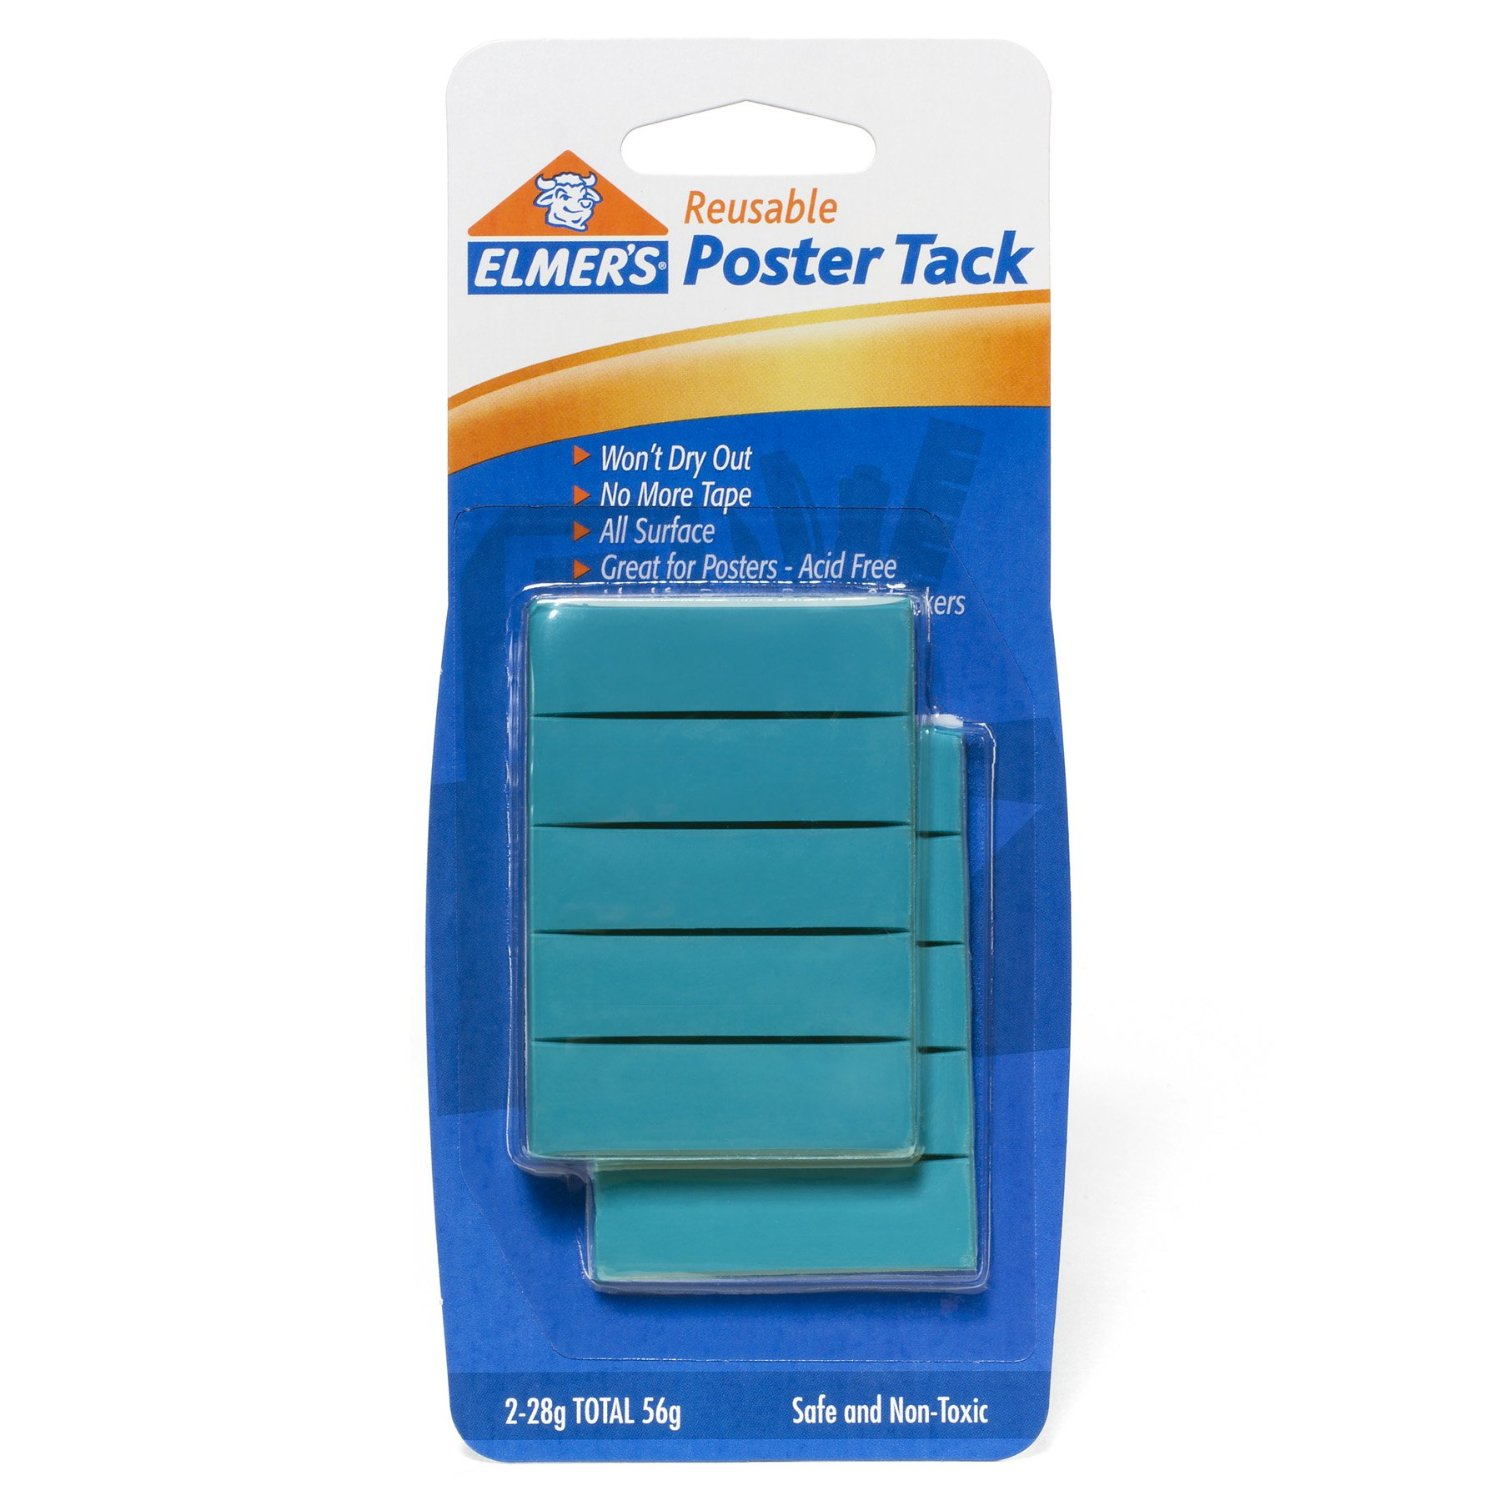 How To Hang Posters Without Damaging The Wall